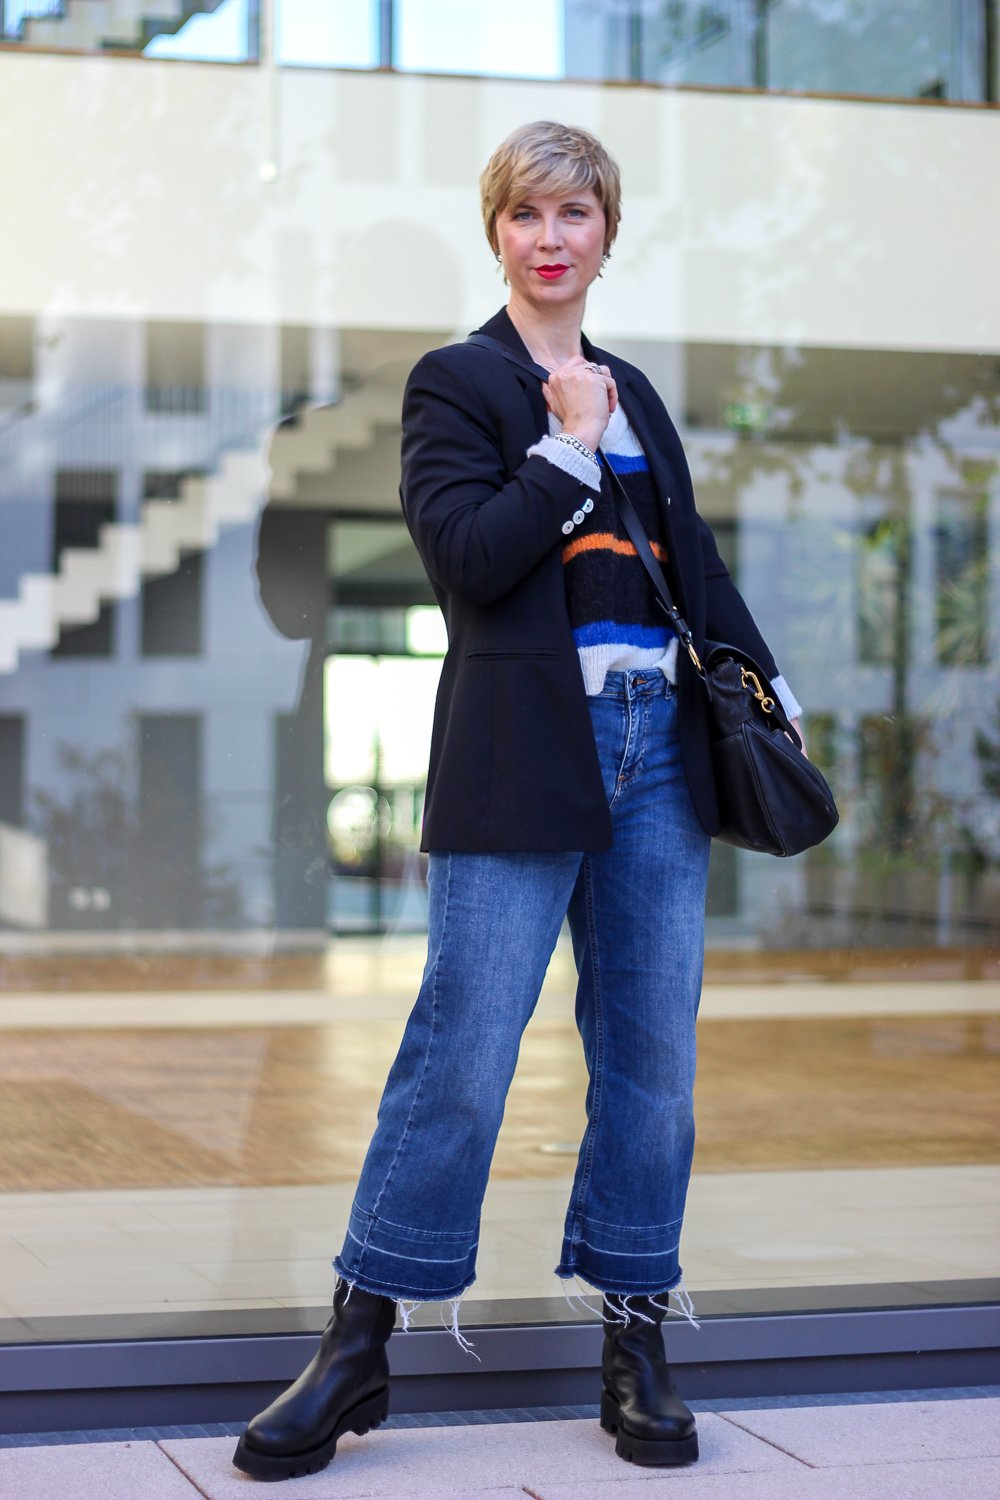 conny doll lifestyle: Jeans-Culotte, Styling mit Boots, Herbstoutfit, Chunky-Boots